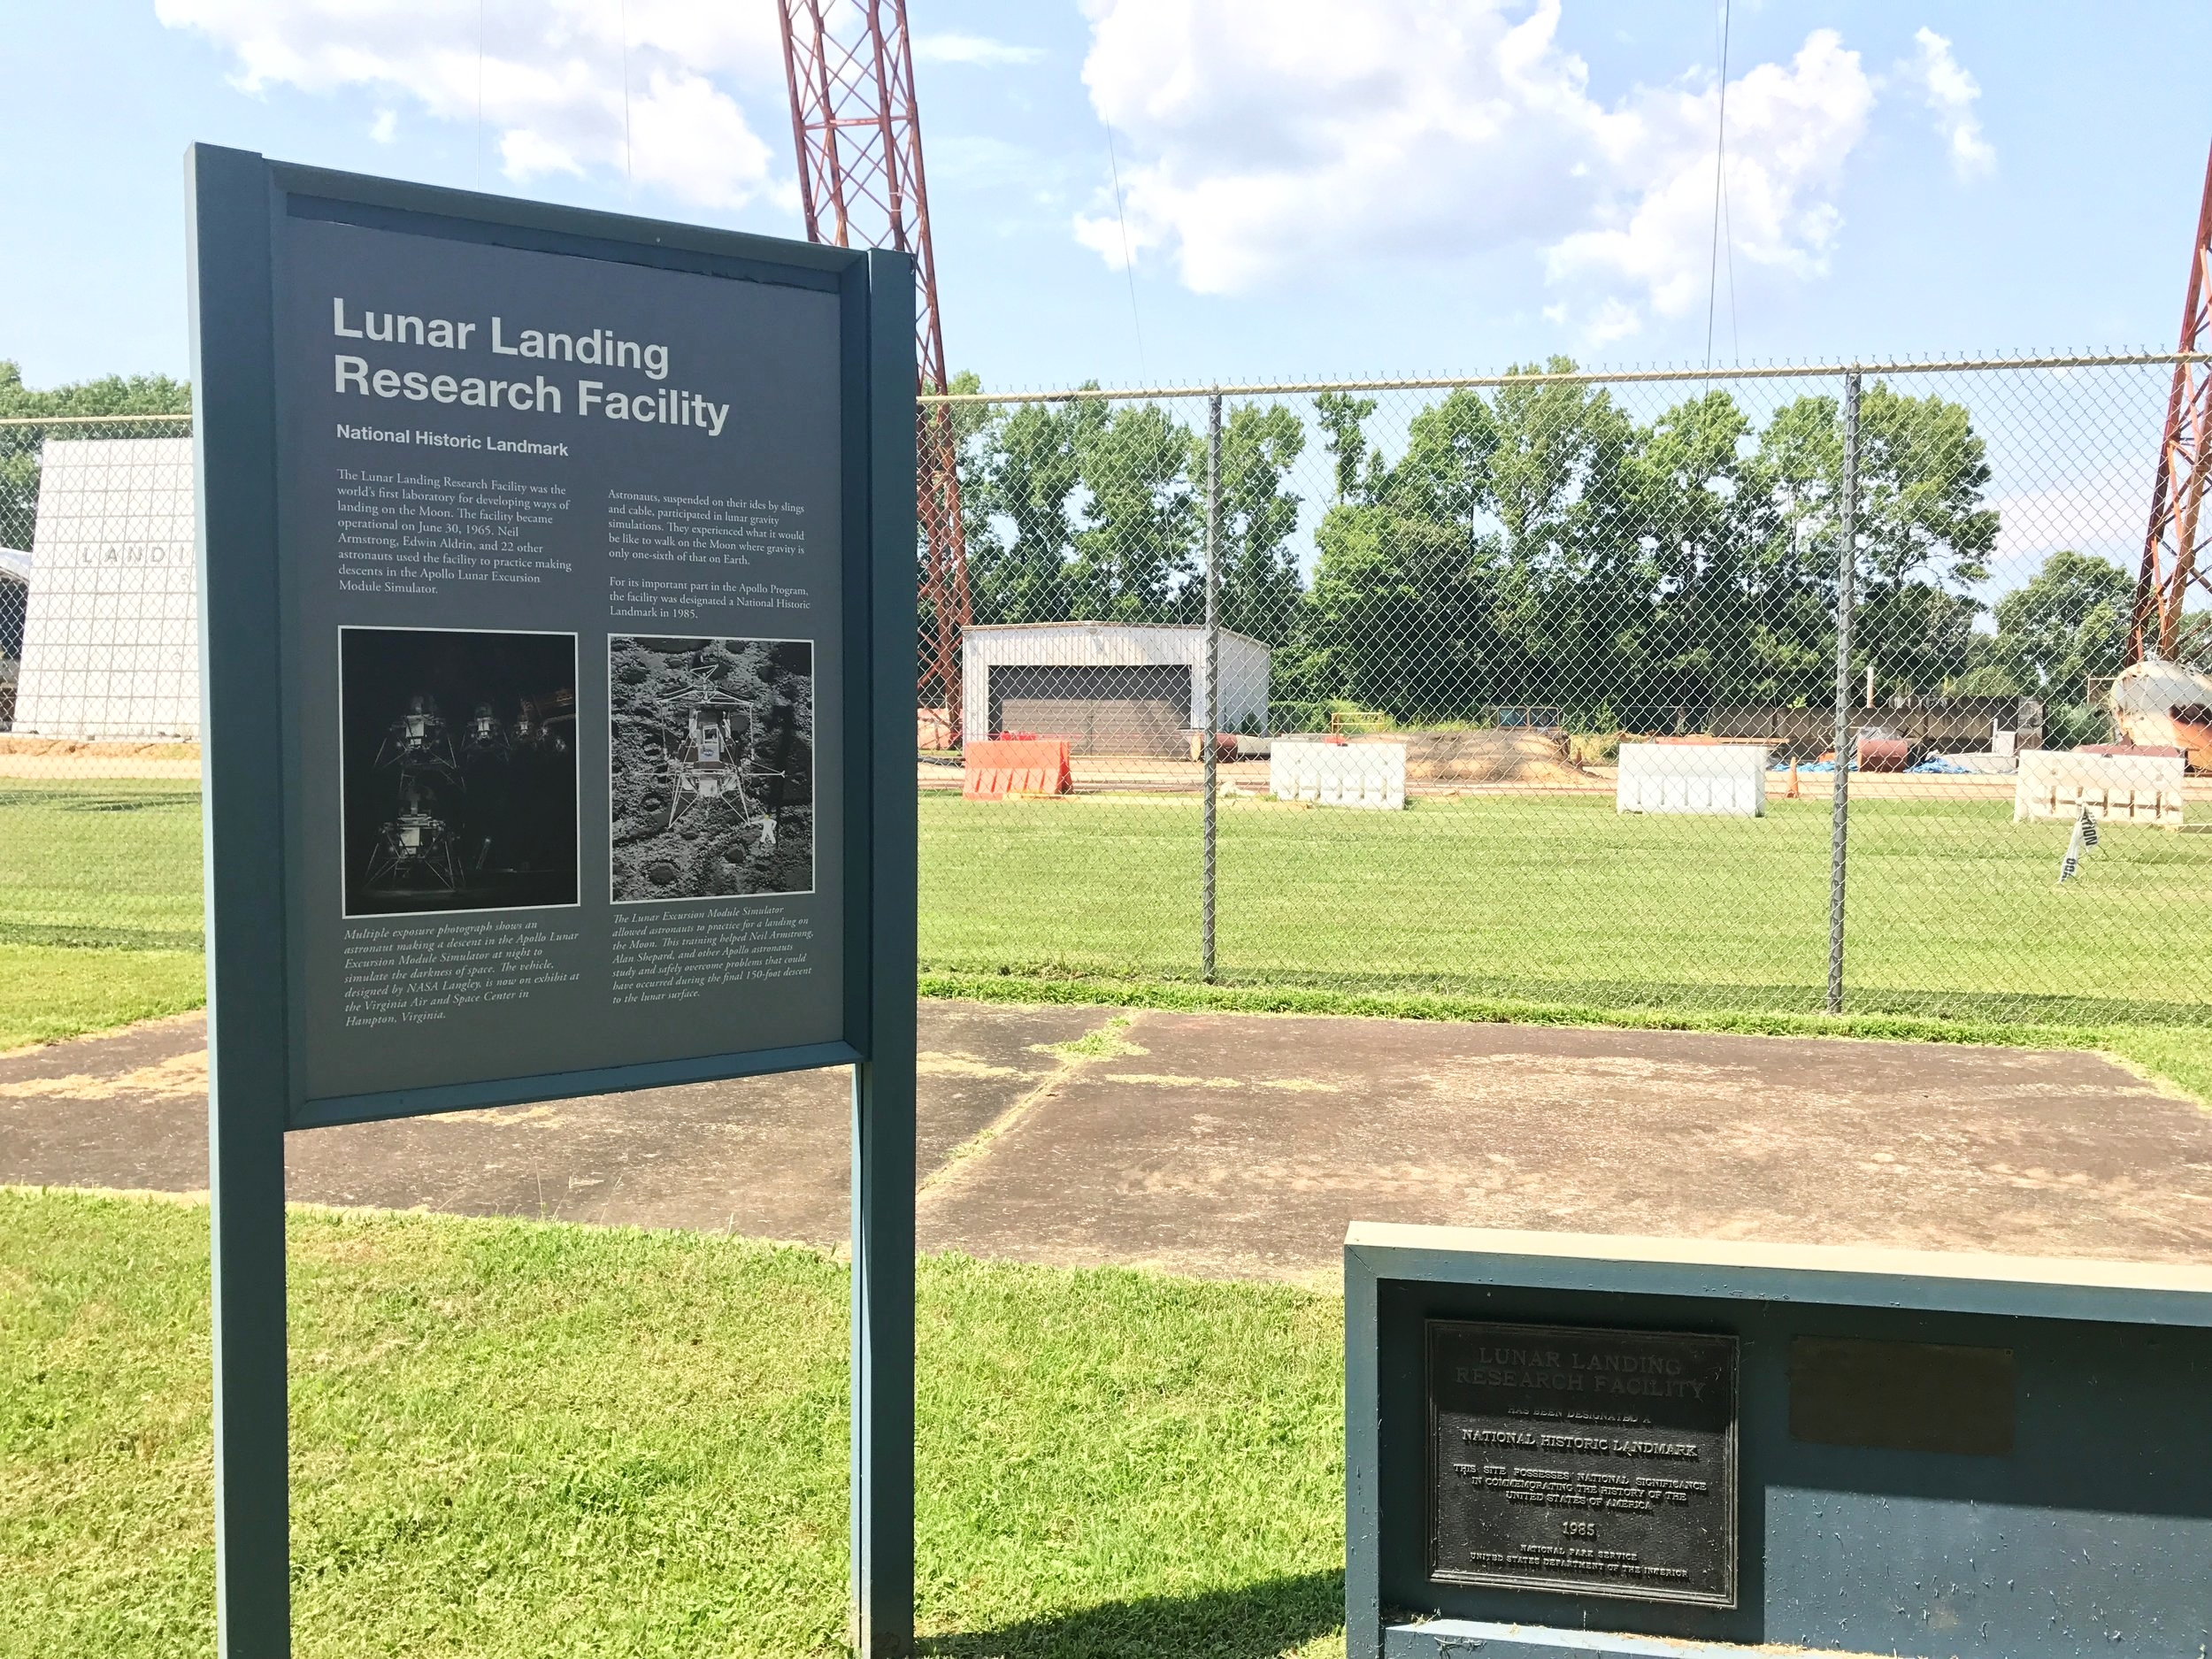 A National Historic Landmark for Apollo landing testing